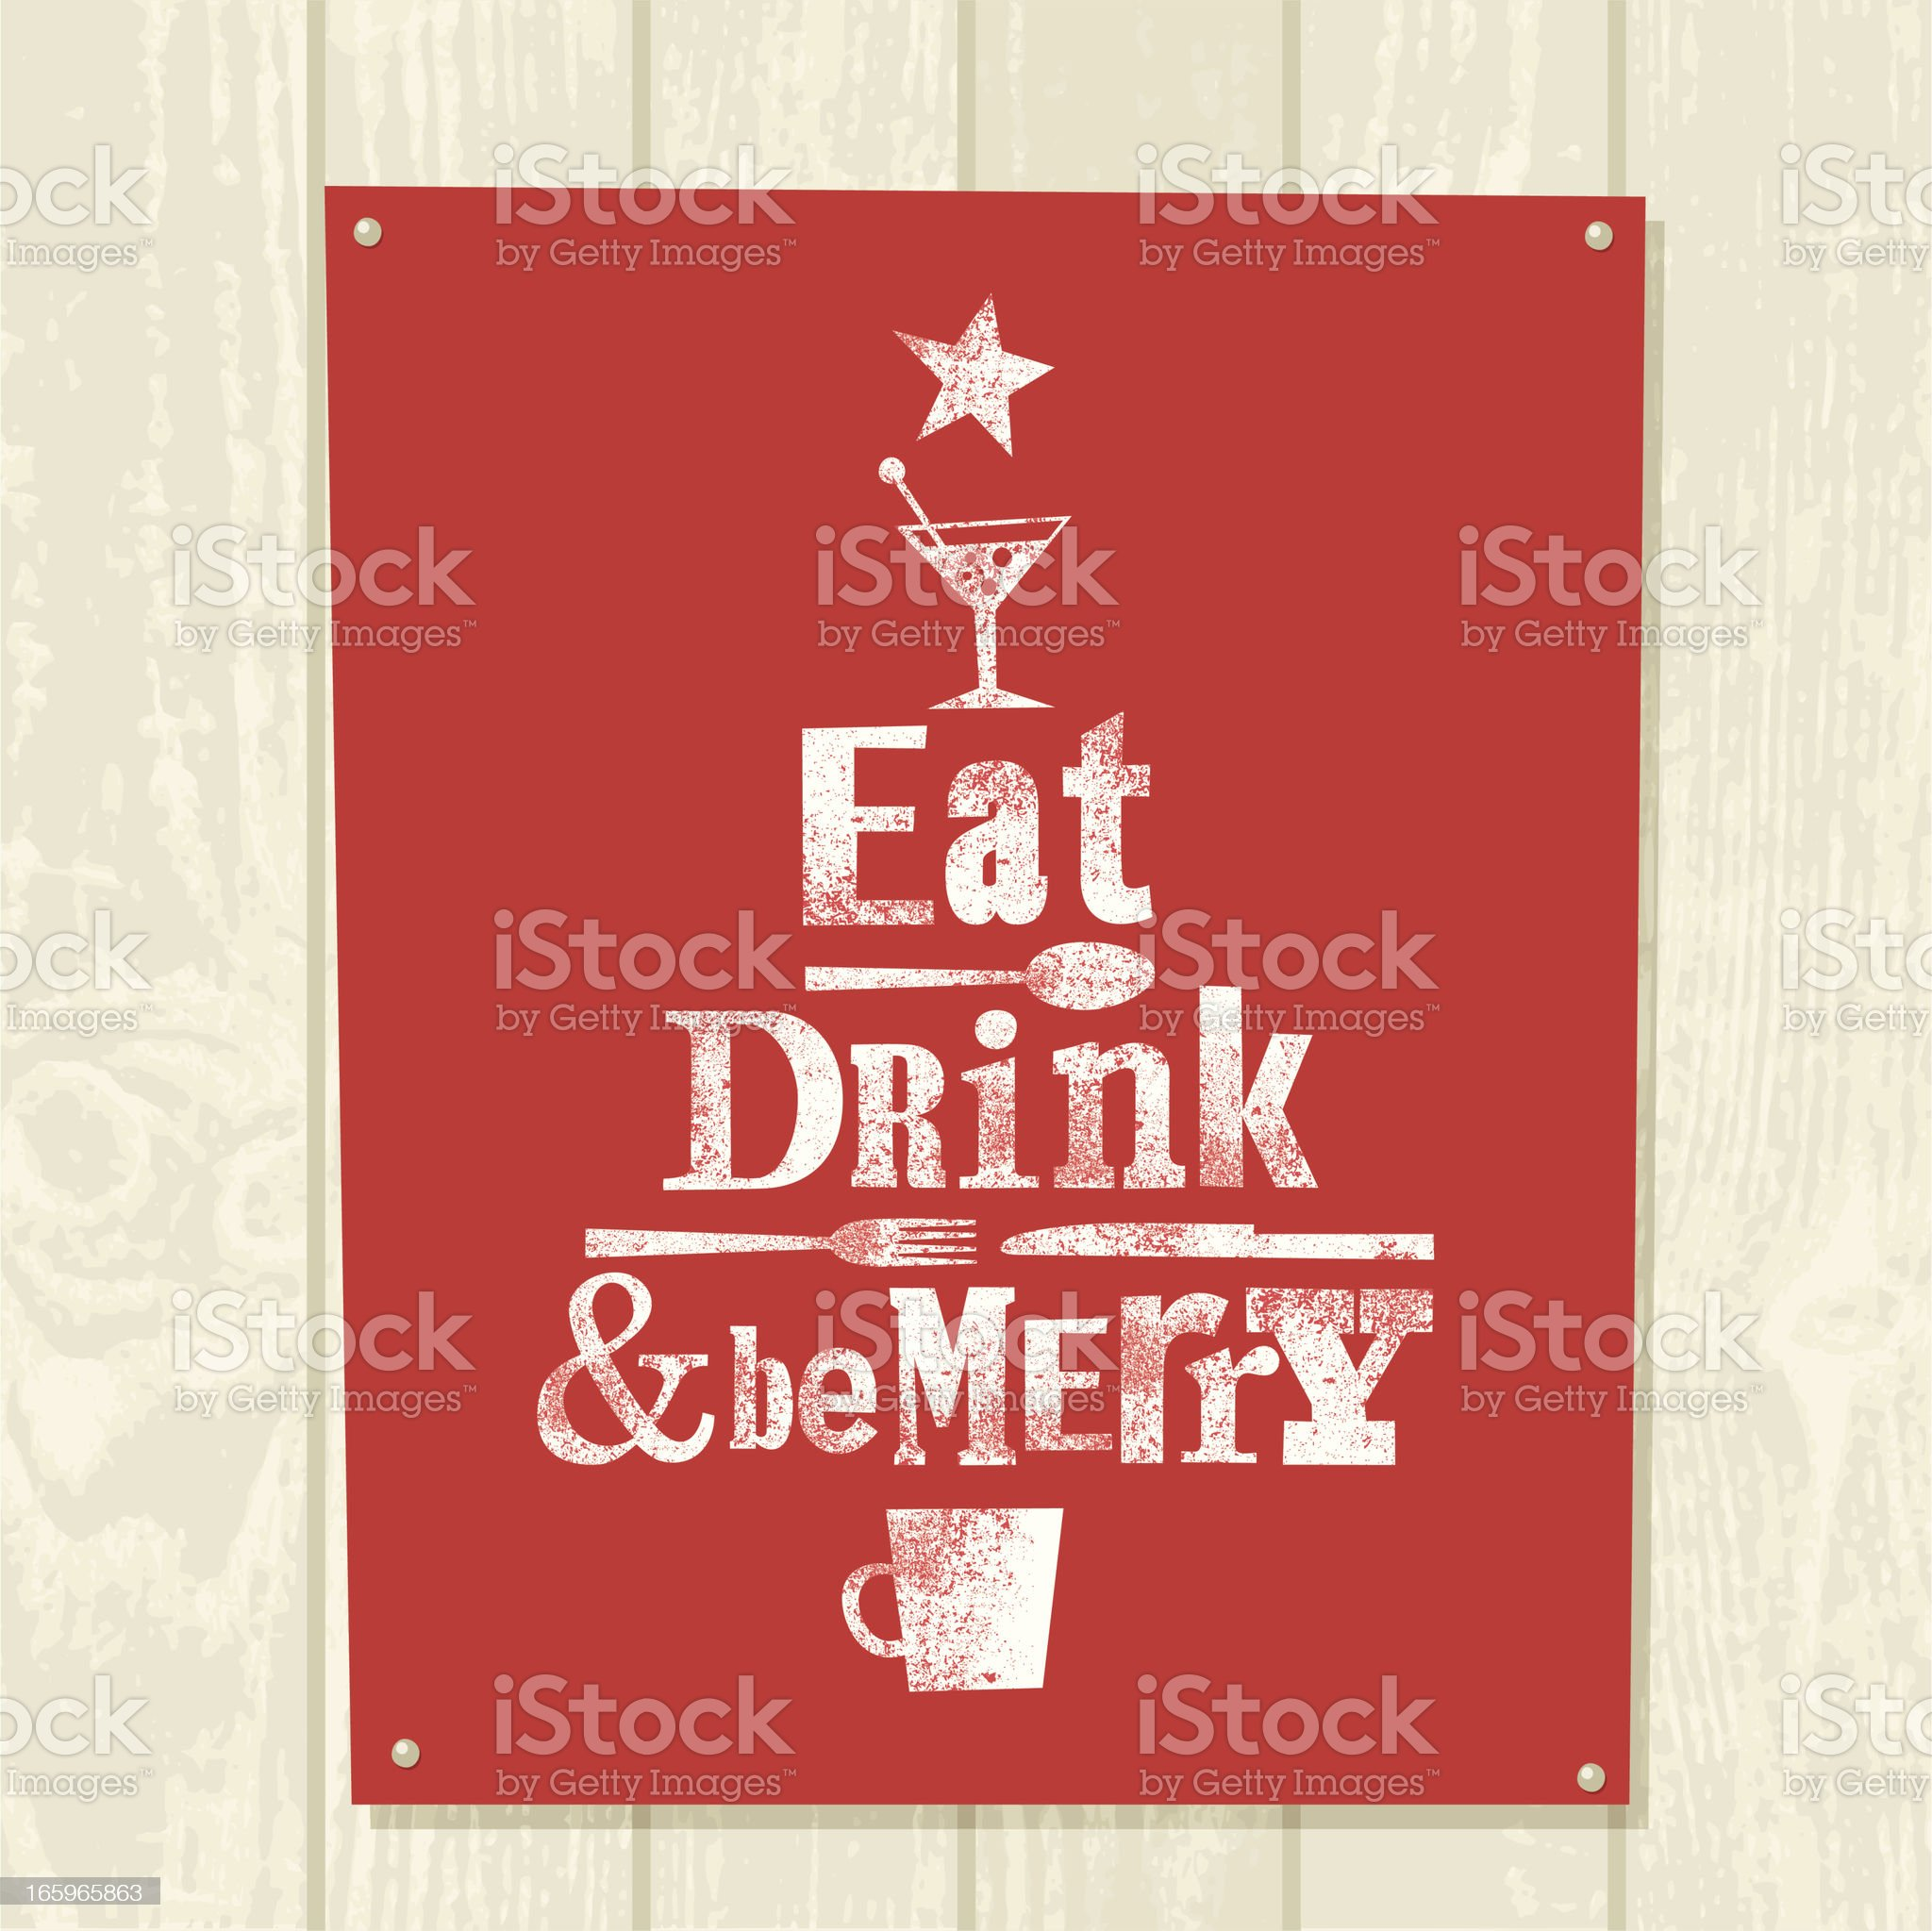 Xmas tree eat drink be merry illustration vector design royalty-free stock vector art